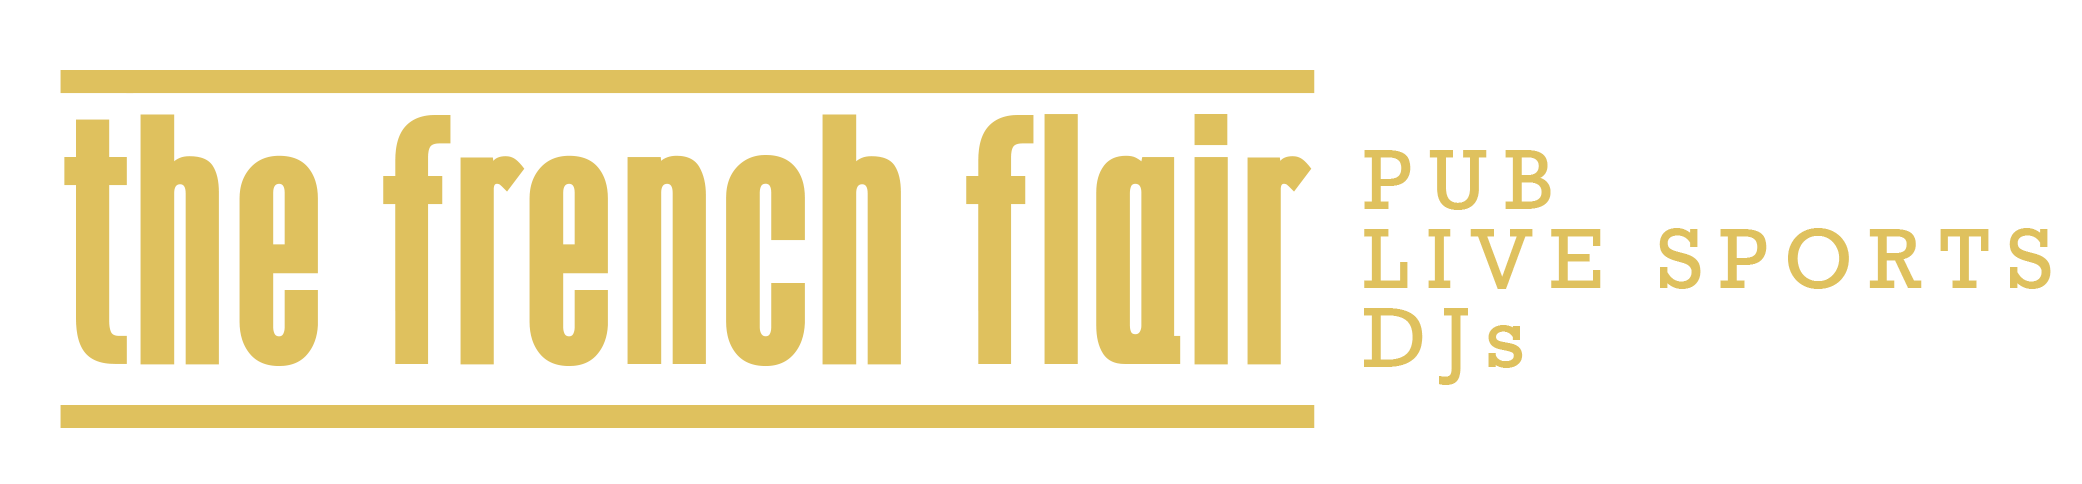 The french flair